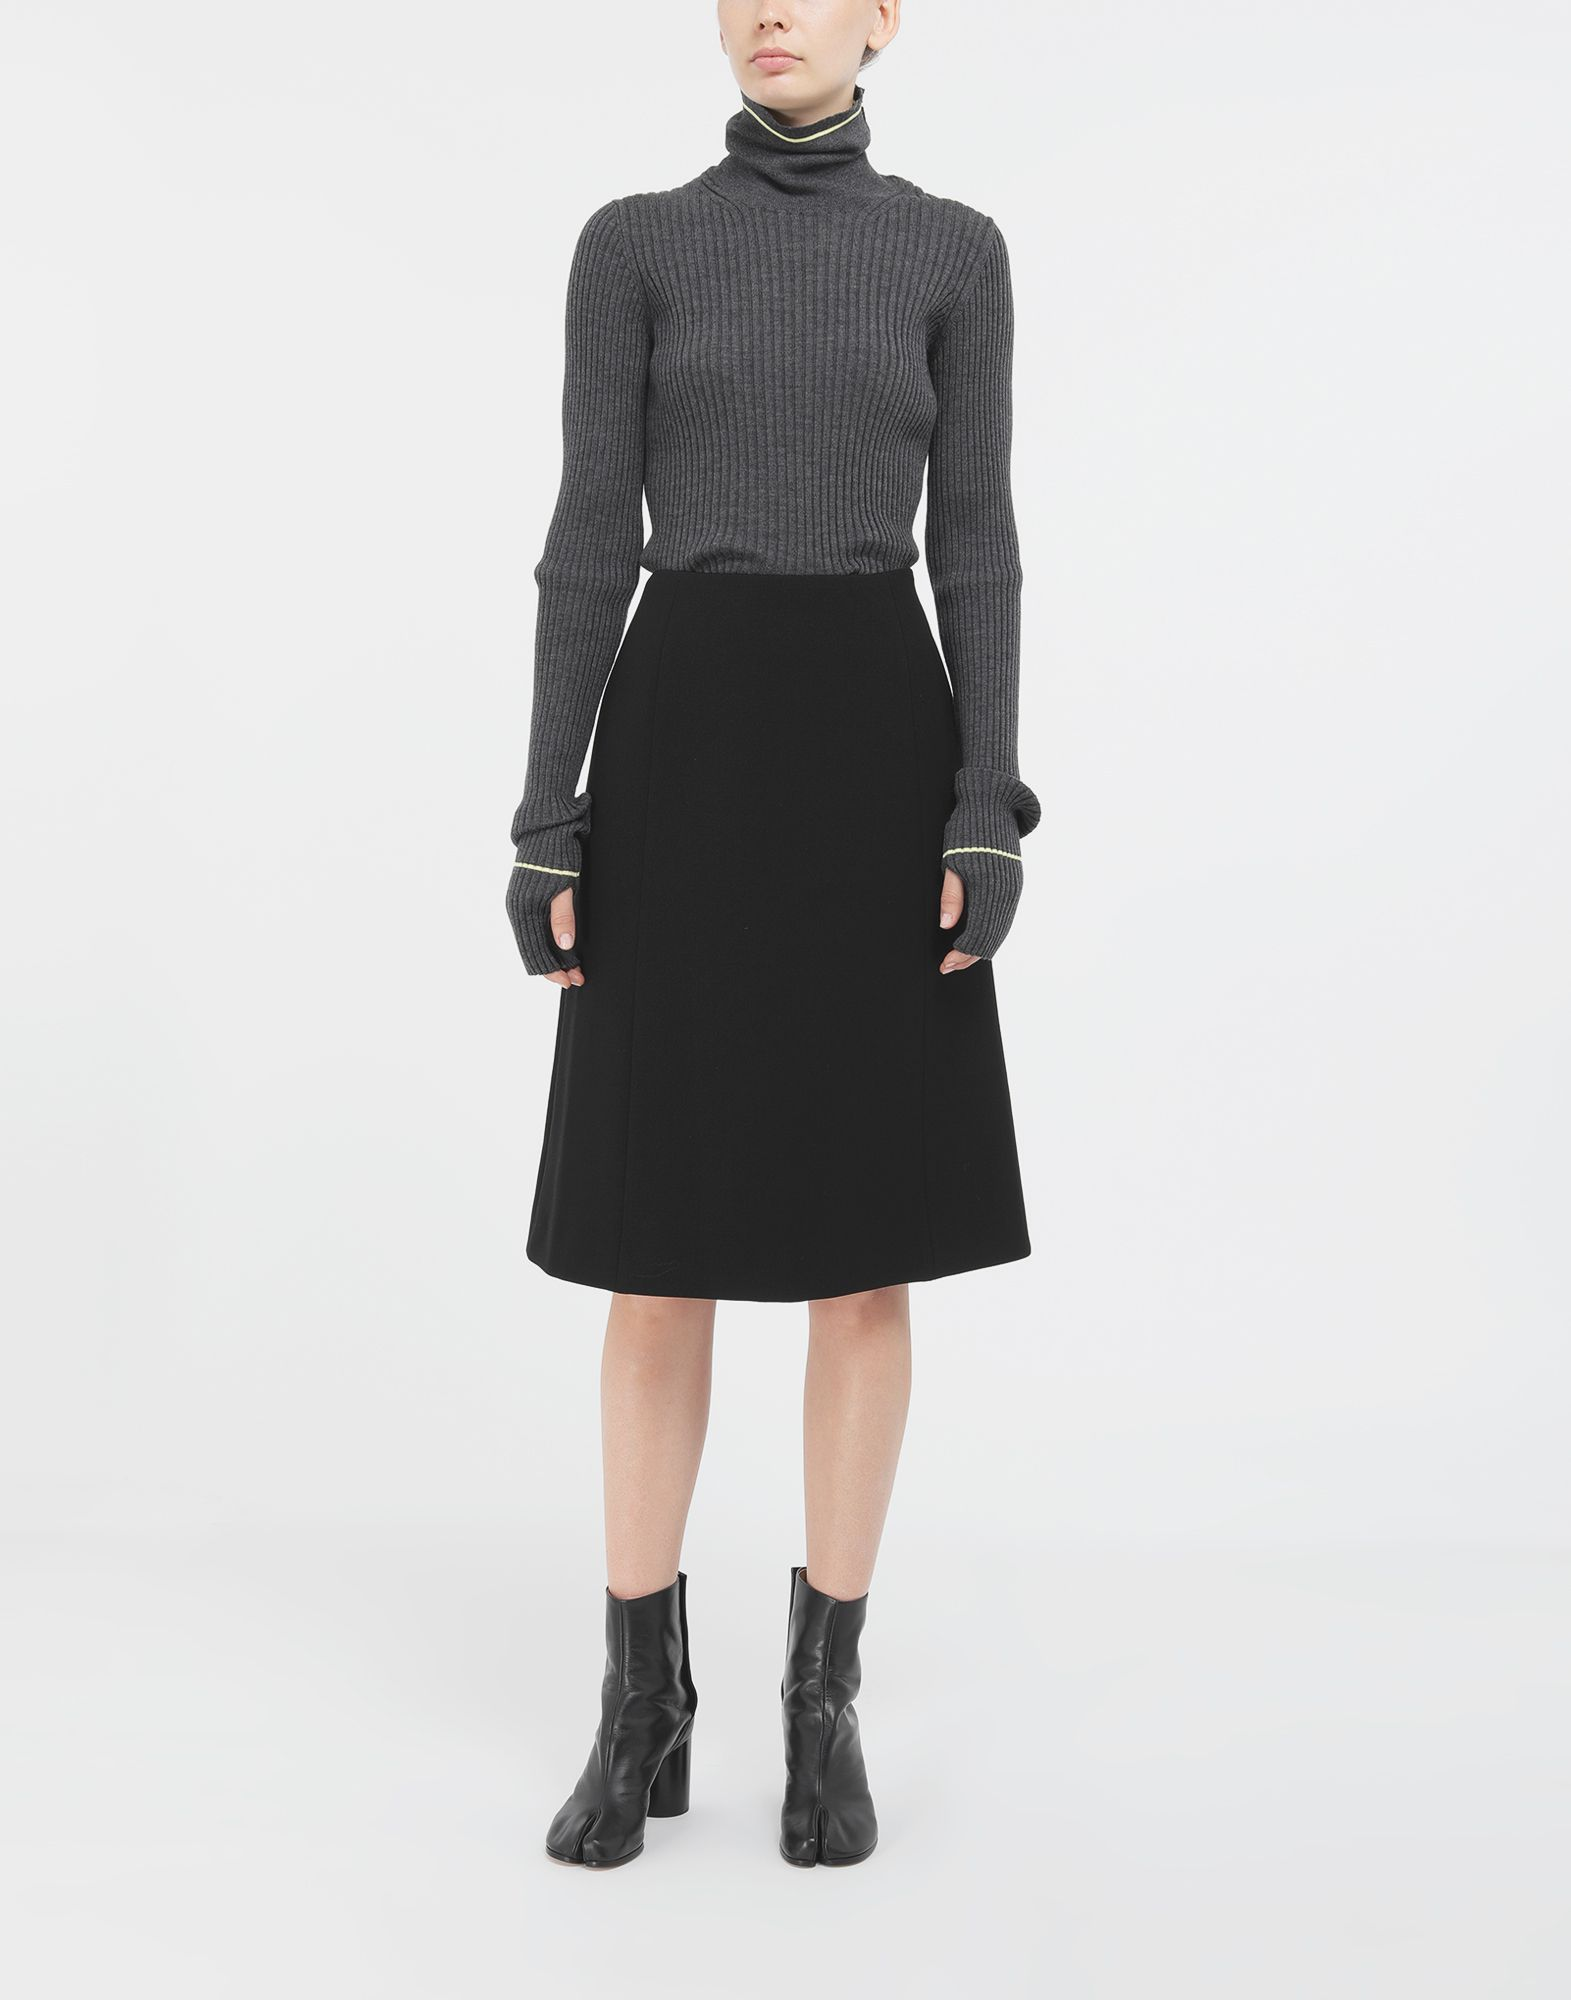 MAISON MARGIELA A-line skirt 3/4 length skirt Woman d